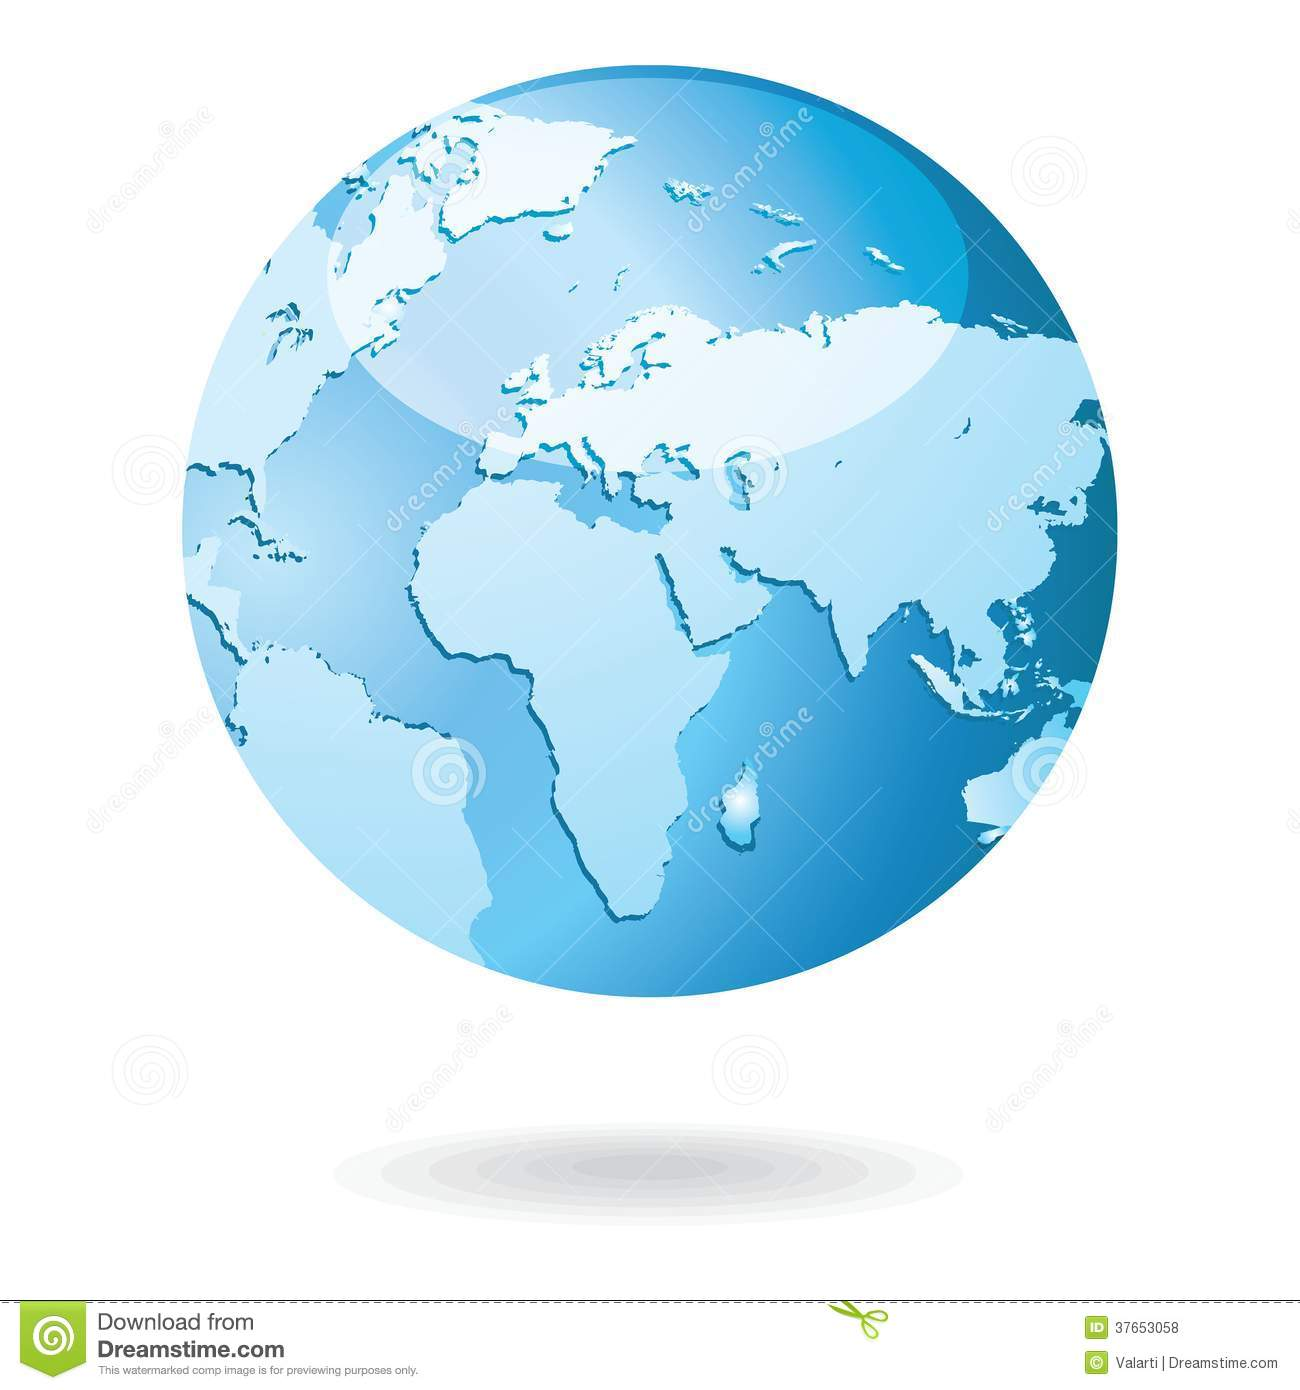 World map and globe detail vector illustration stock vector world map and globe detail vector illustration royalty free stock photo gumiabroncs Choice Image